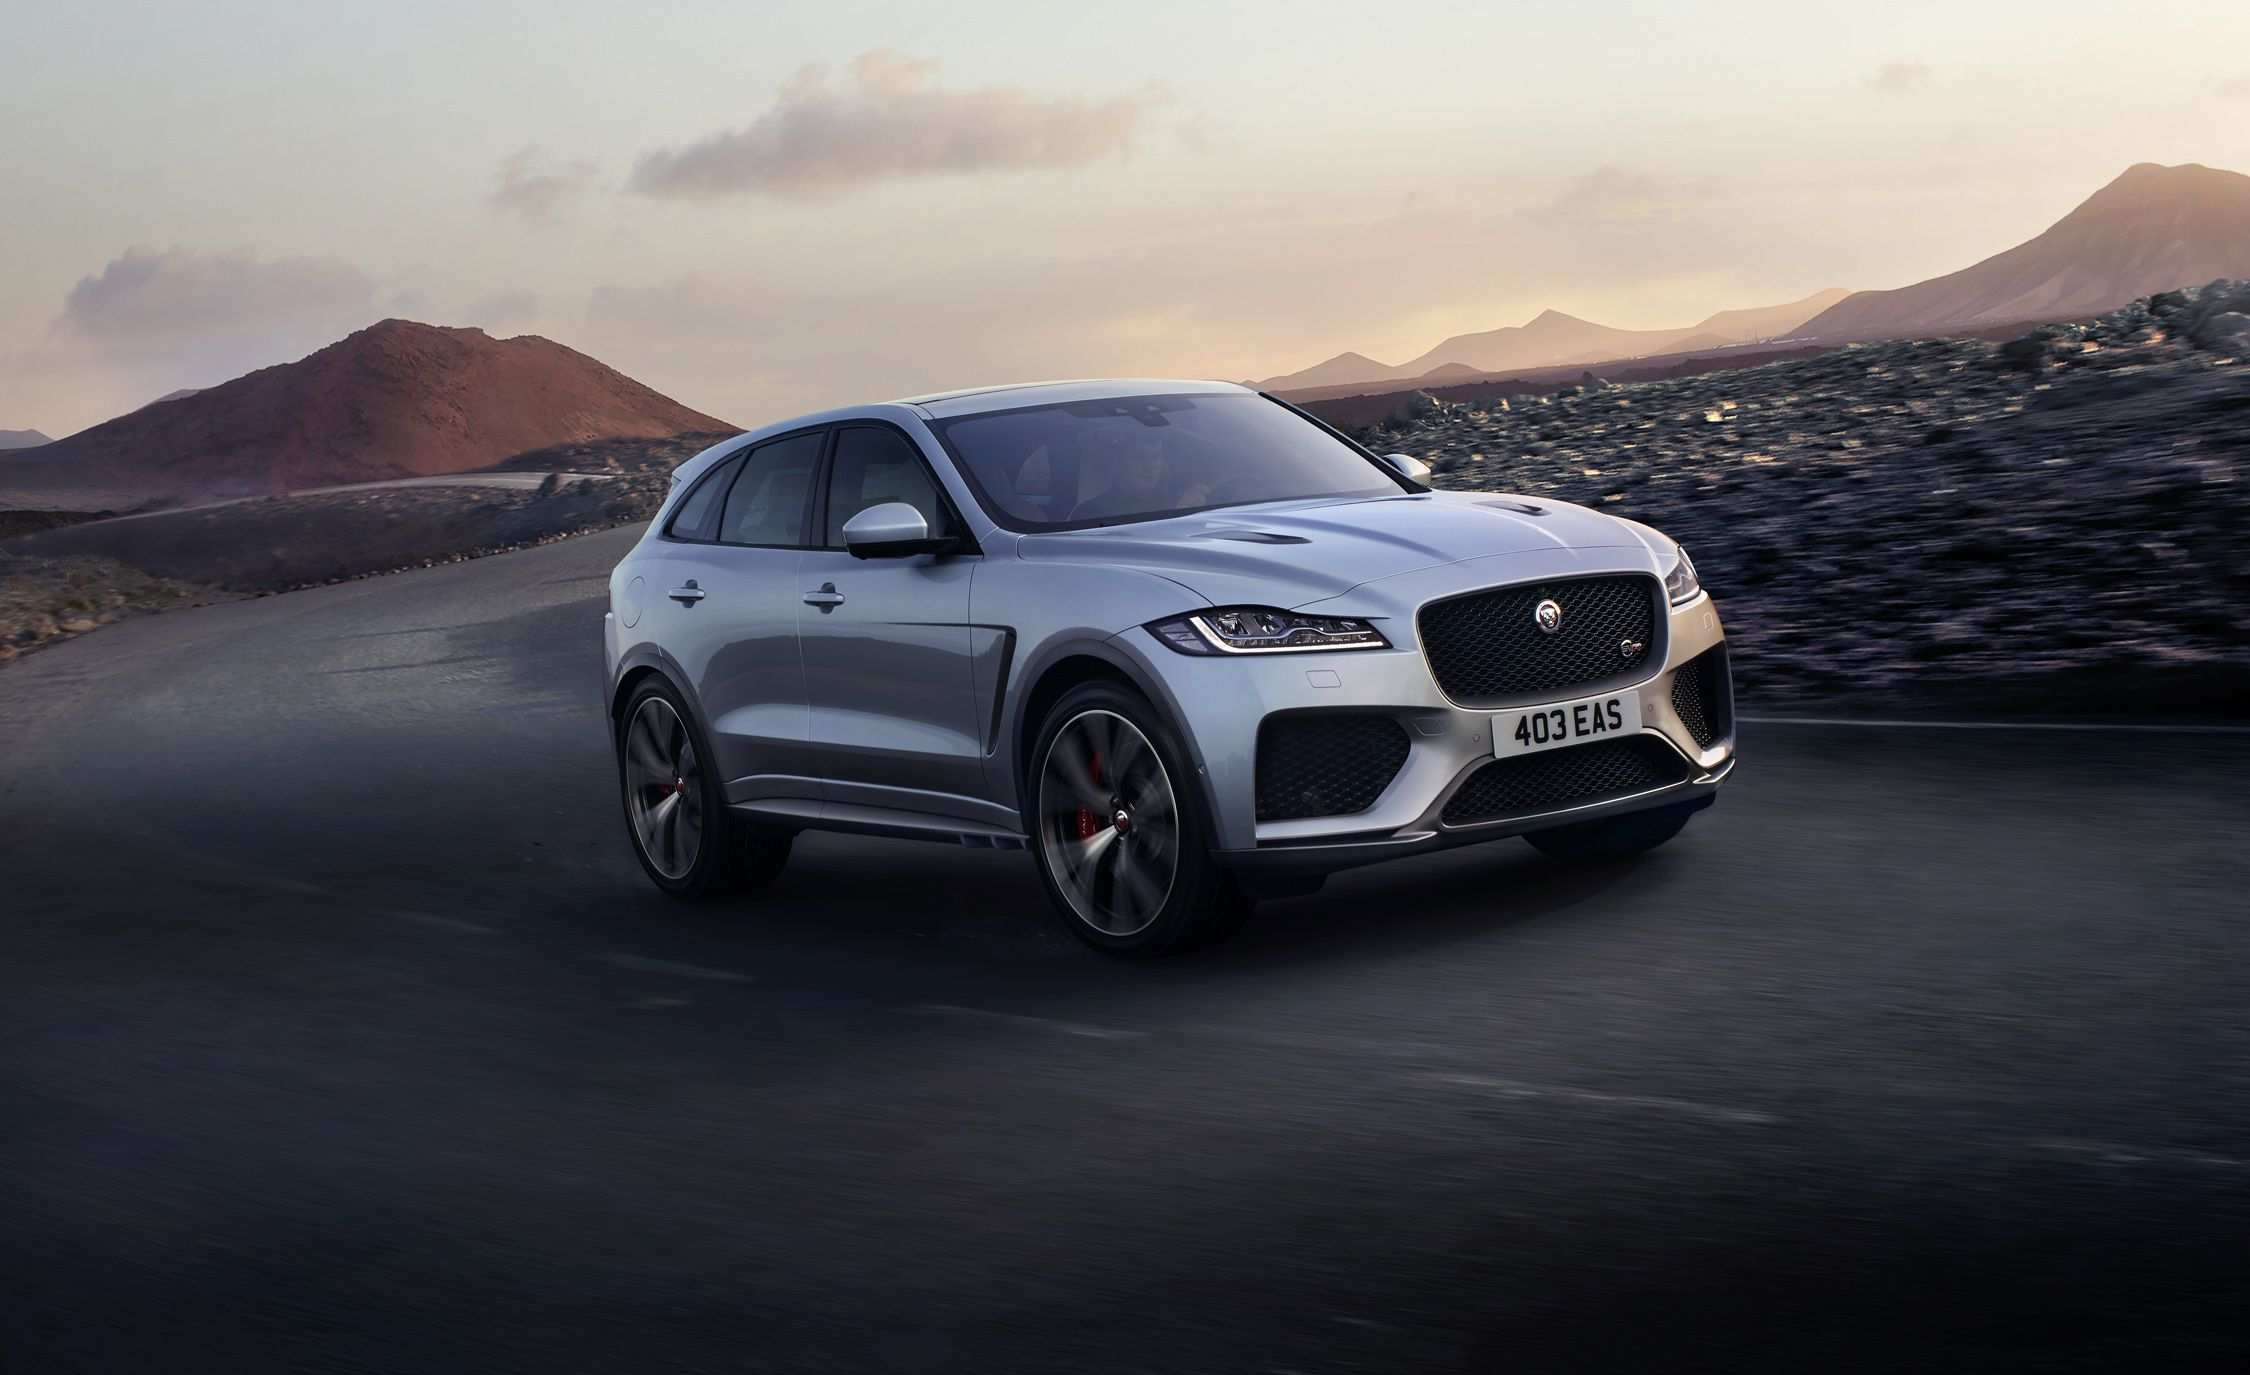 96 The 2019 Jaguar F Pace Changes Performance with 2019 Jaguar F Pace Changes